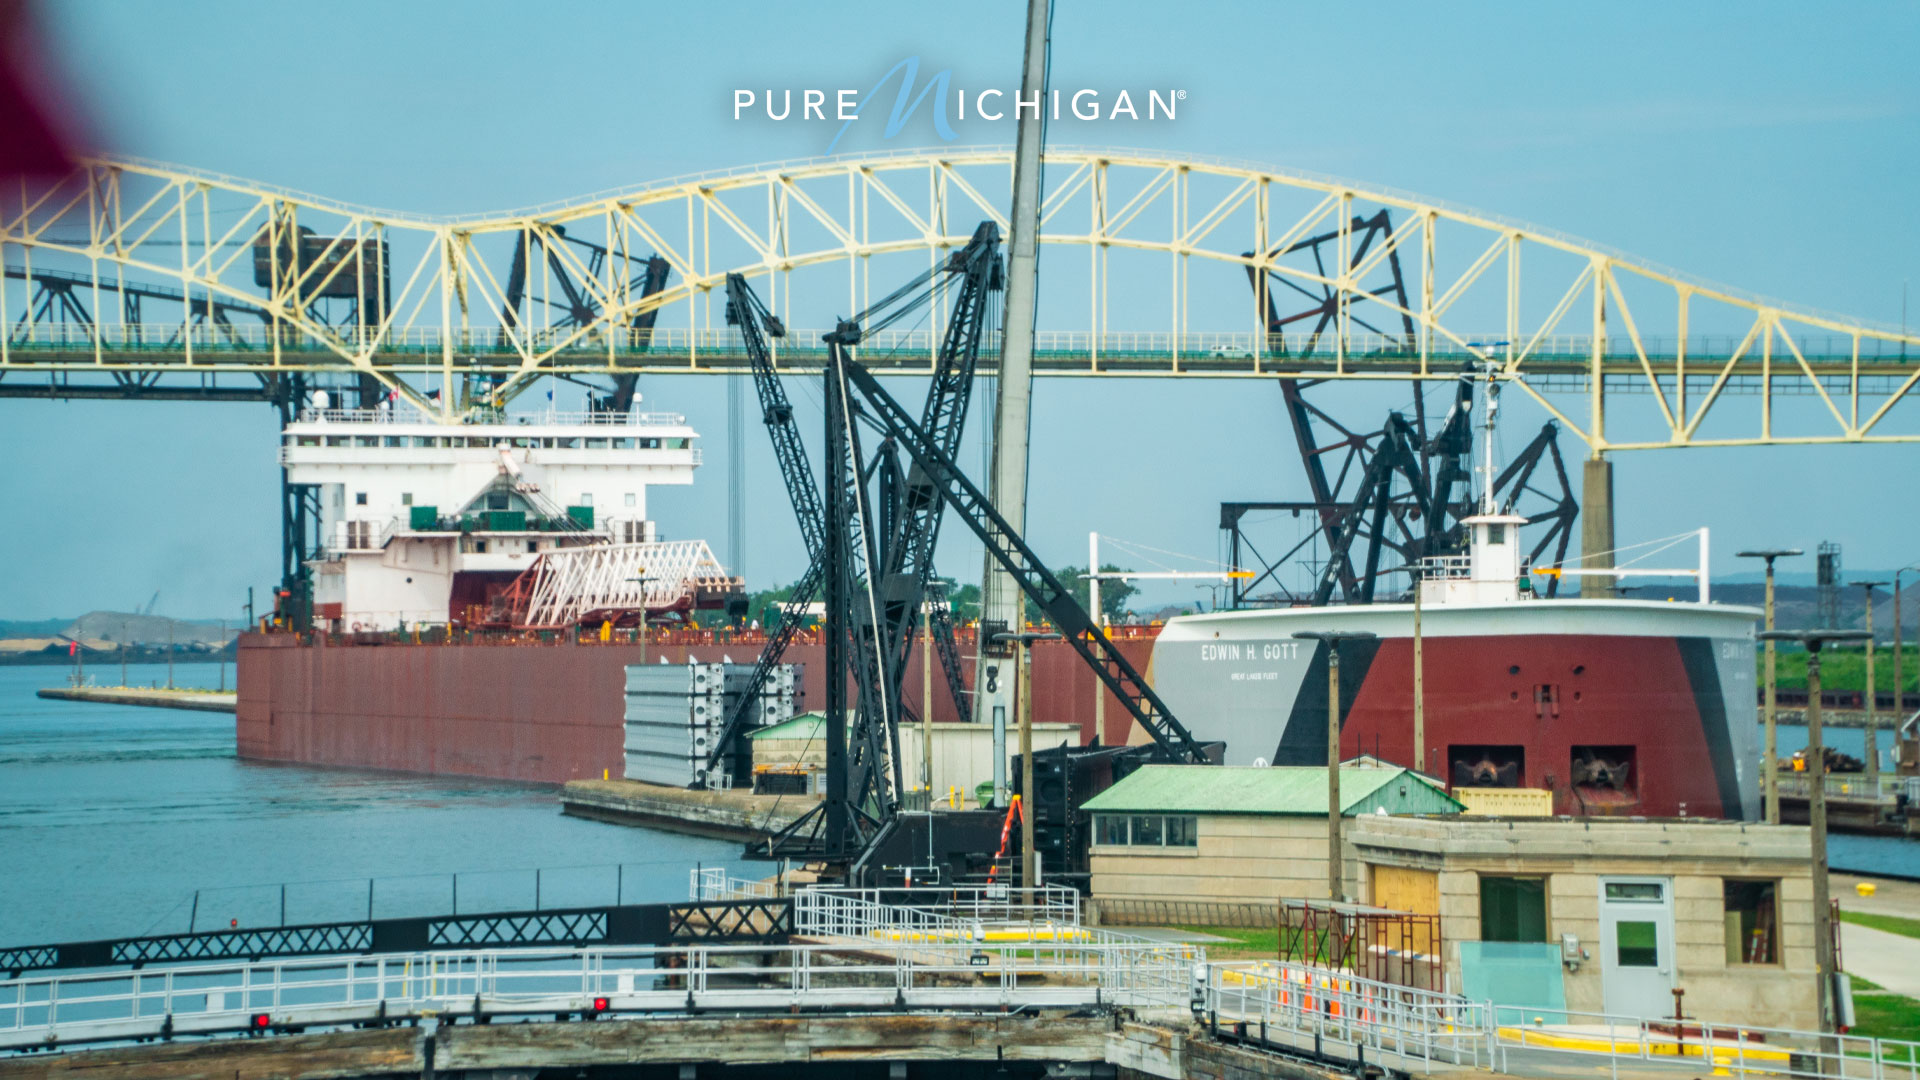 Freighter in Soo Locks